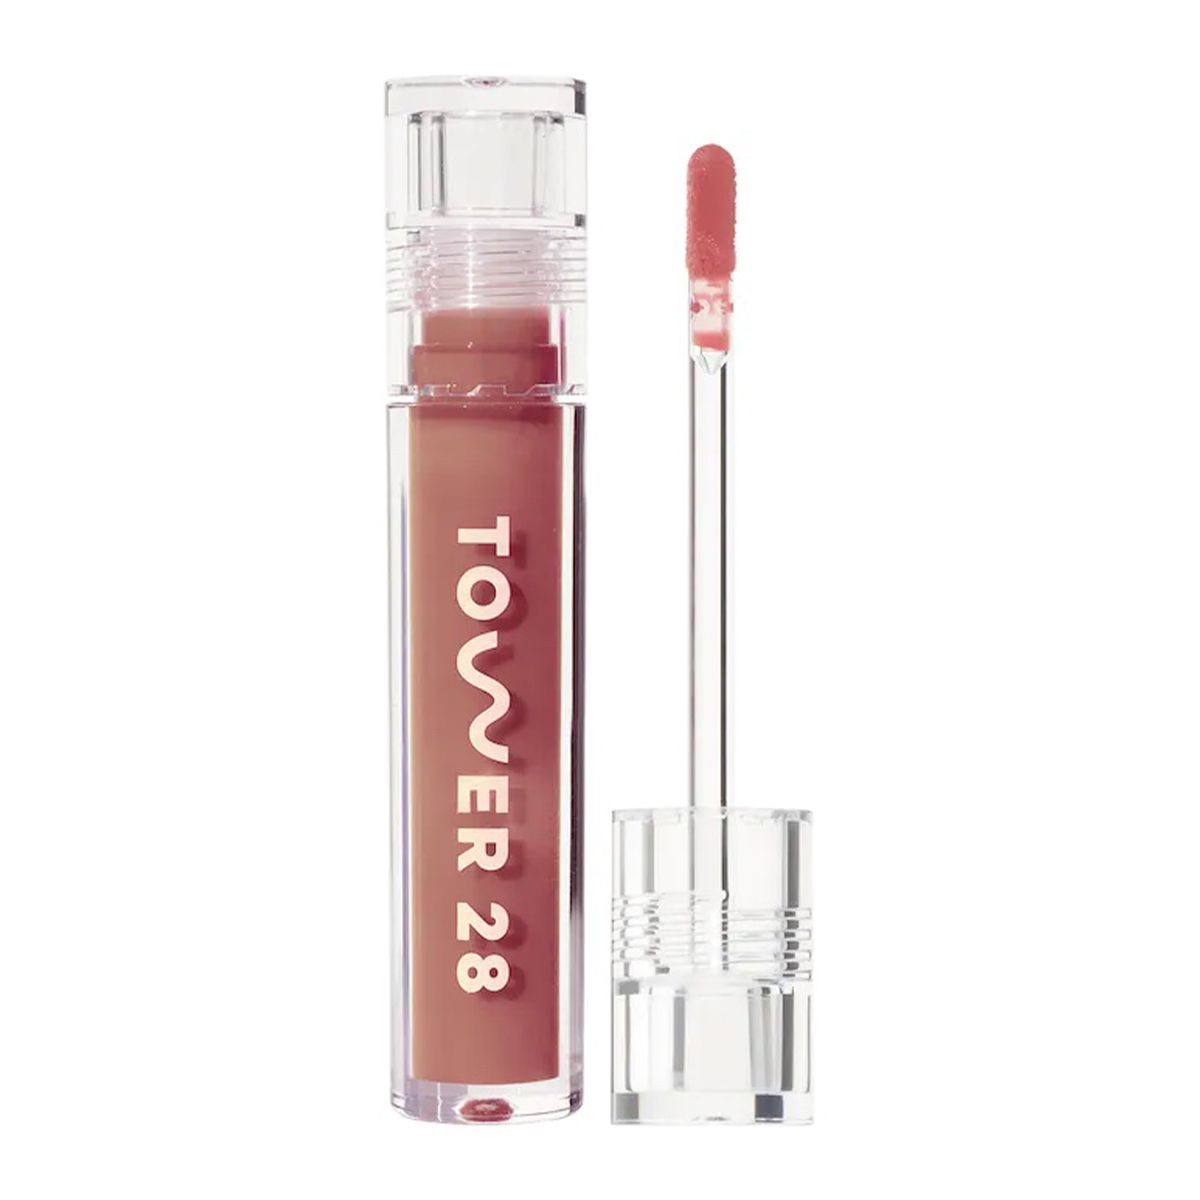 42 Life-Changing Beauty Products From Amazon, Sephora, and Dermstore - best beauty products amazon sephora dermstore 292615 1617915615623